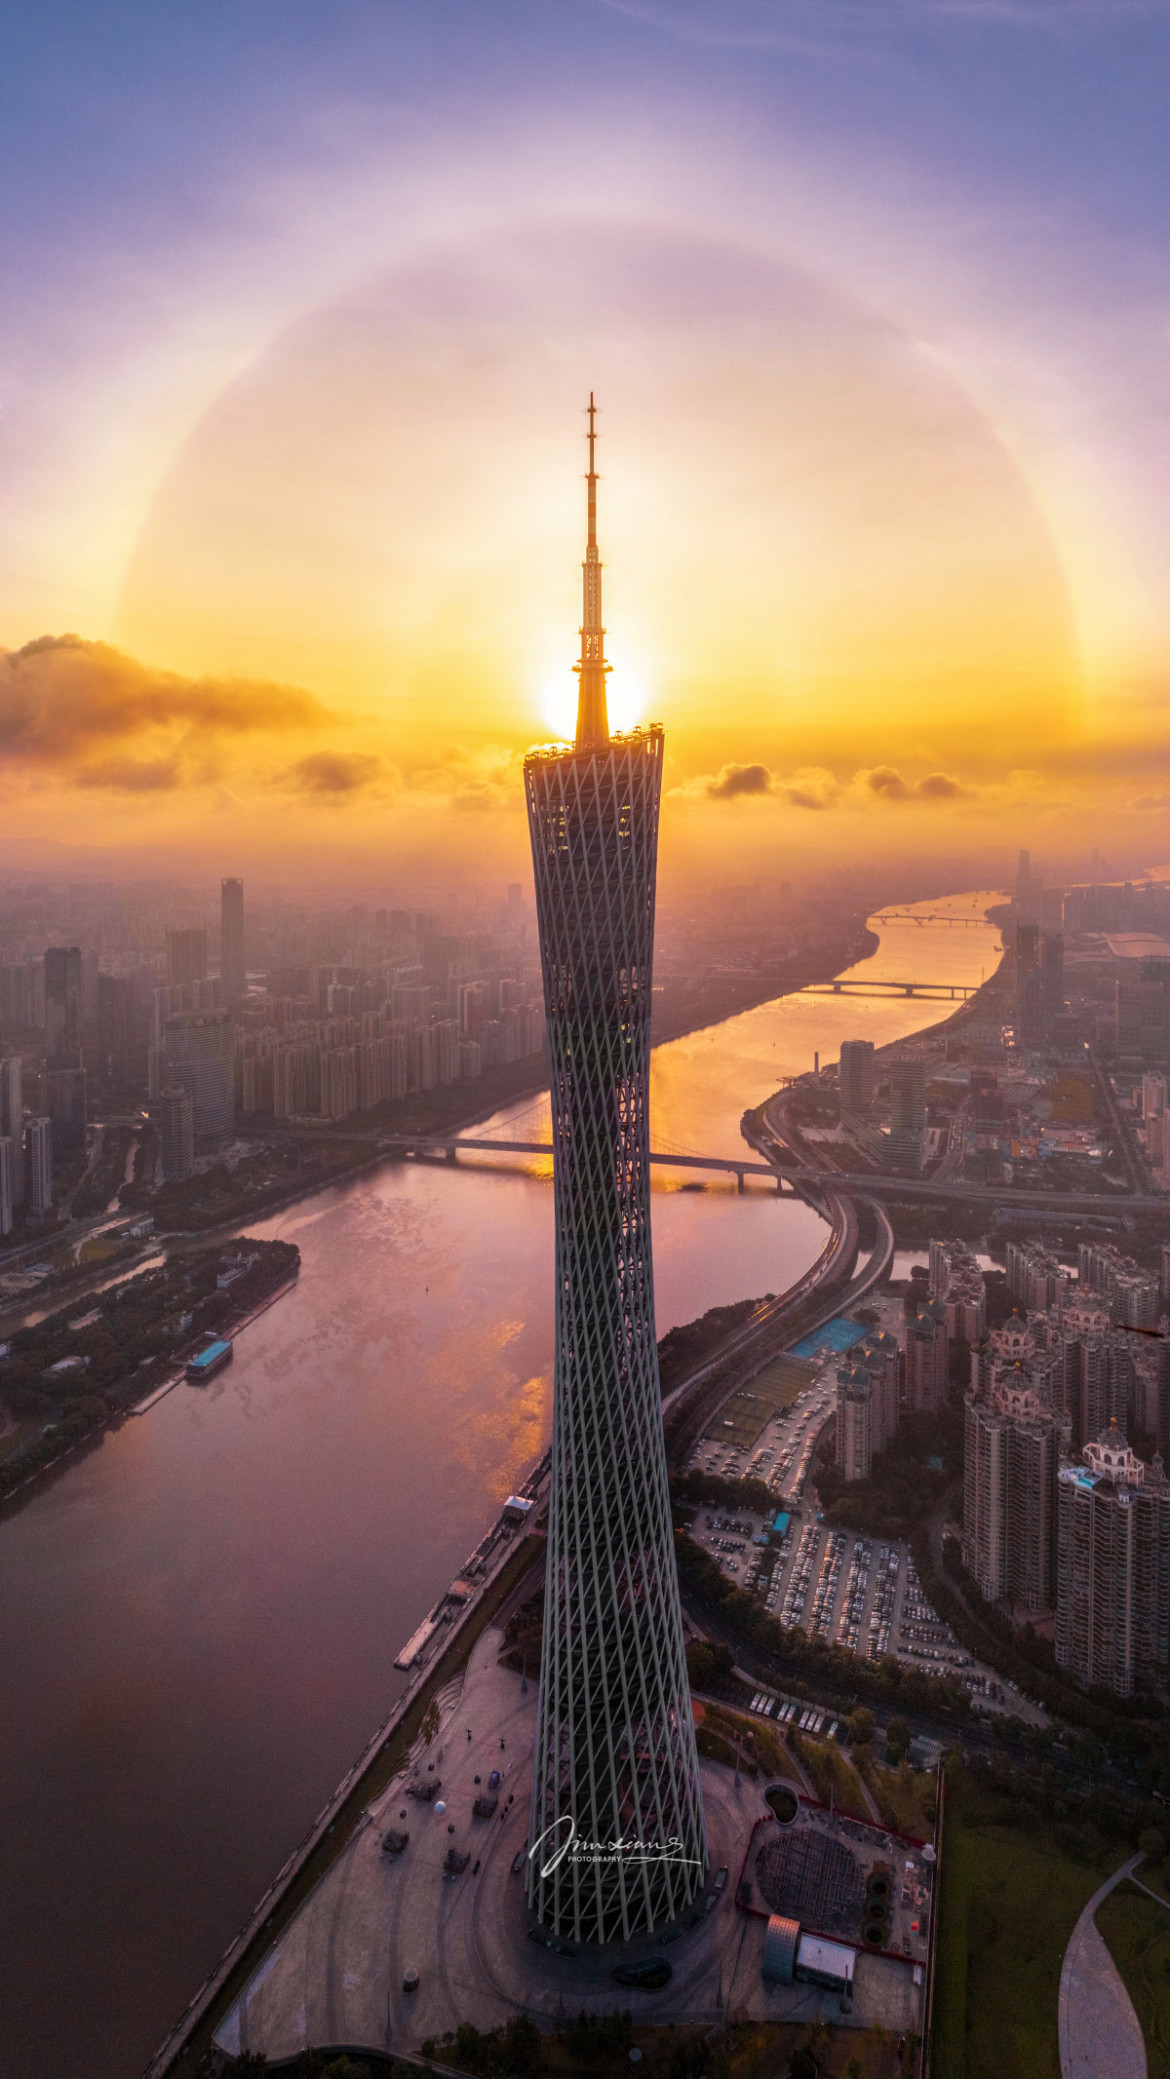 fot. Jim Xiang, 1. nagroda w konkursie Skypixel Aerial Photo & Video Contest 2019